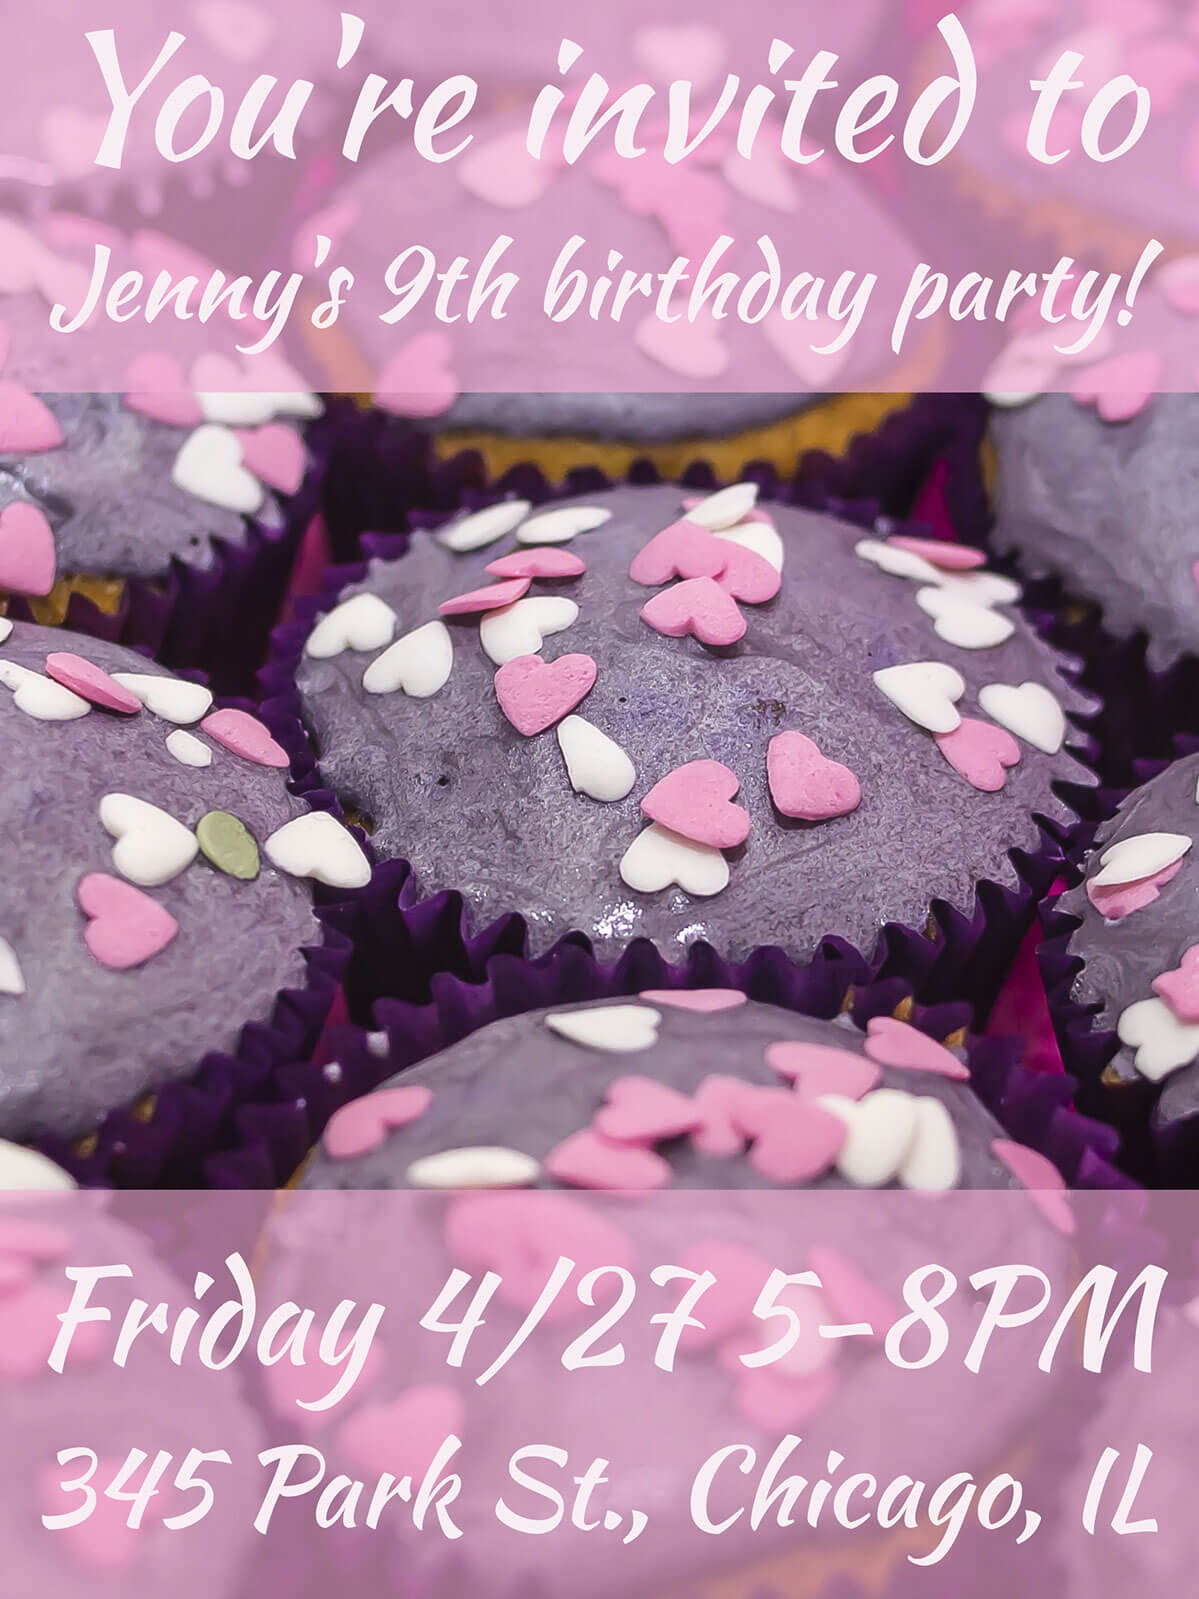 Girl's birthday party invitation